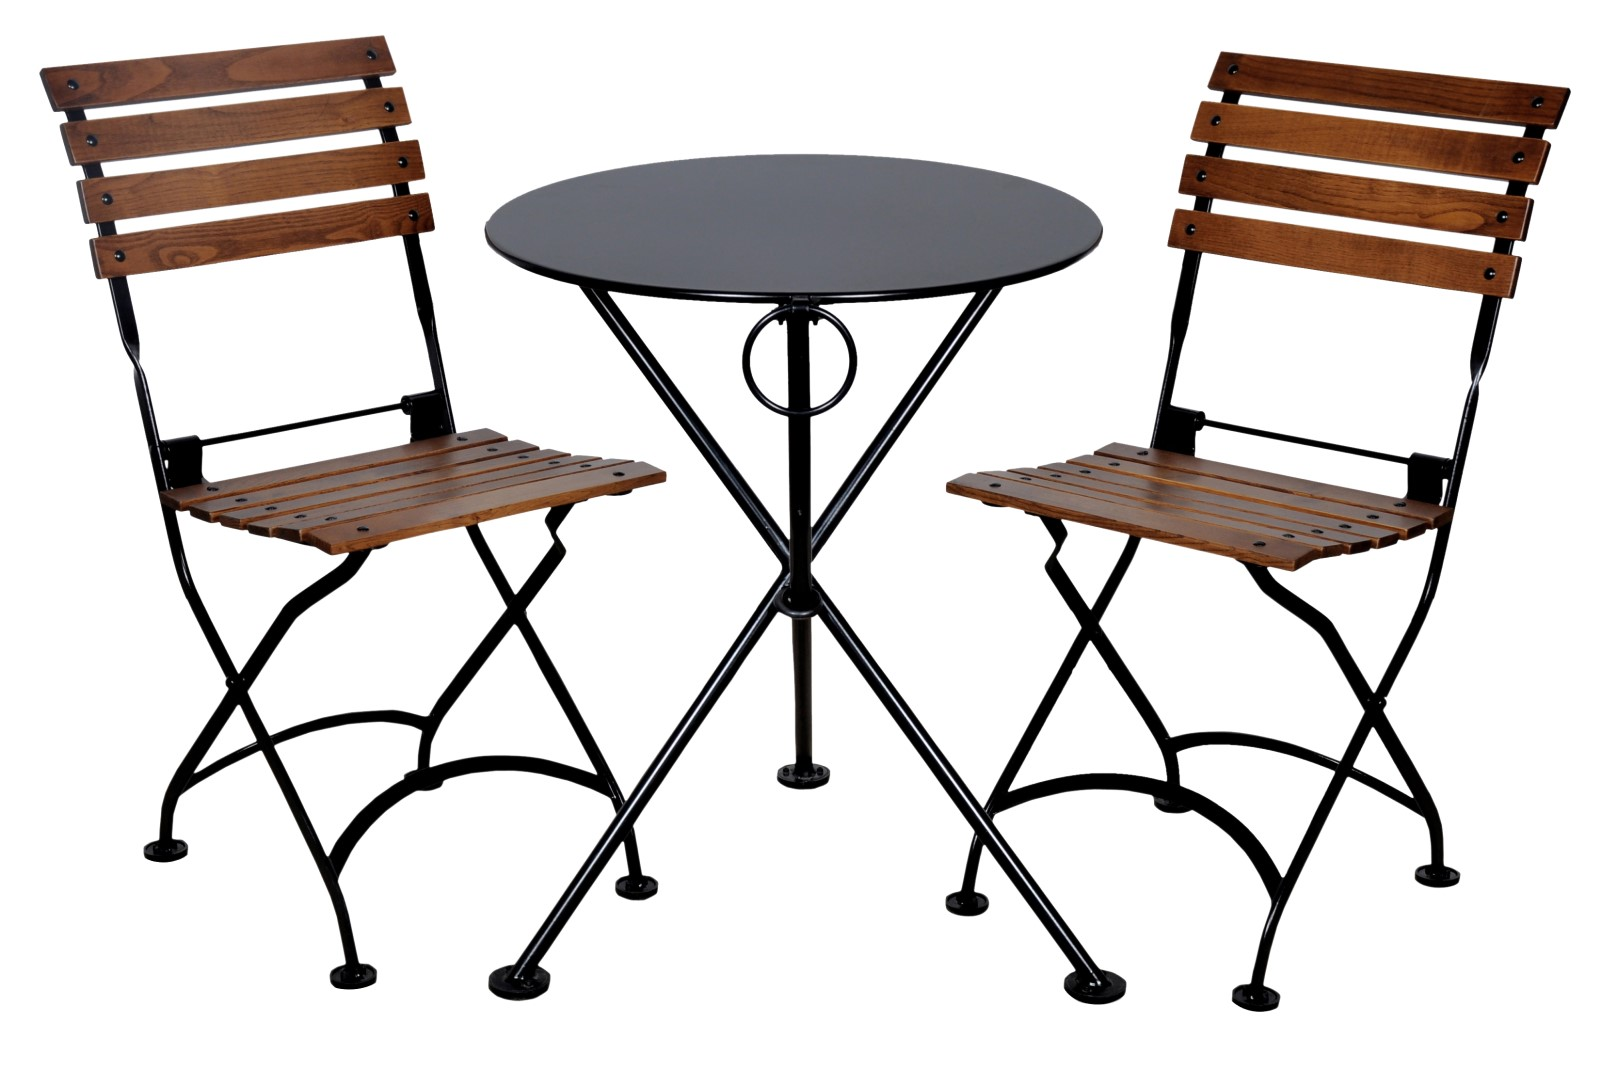 4139S-BK Table and 5504CW-BK chairs